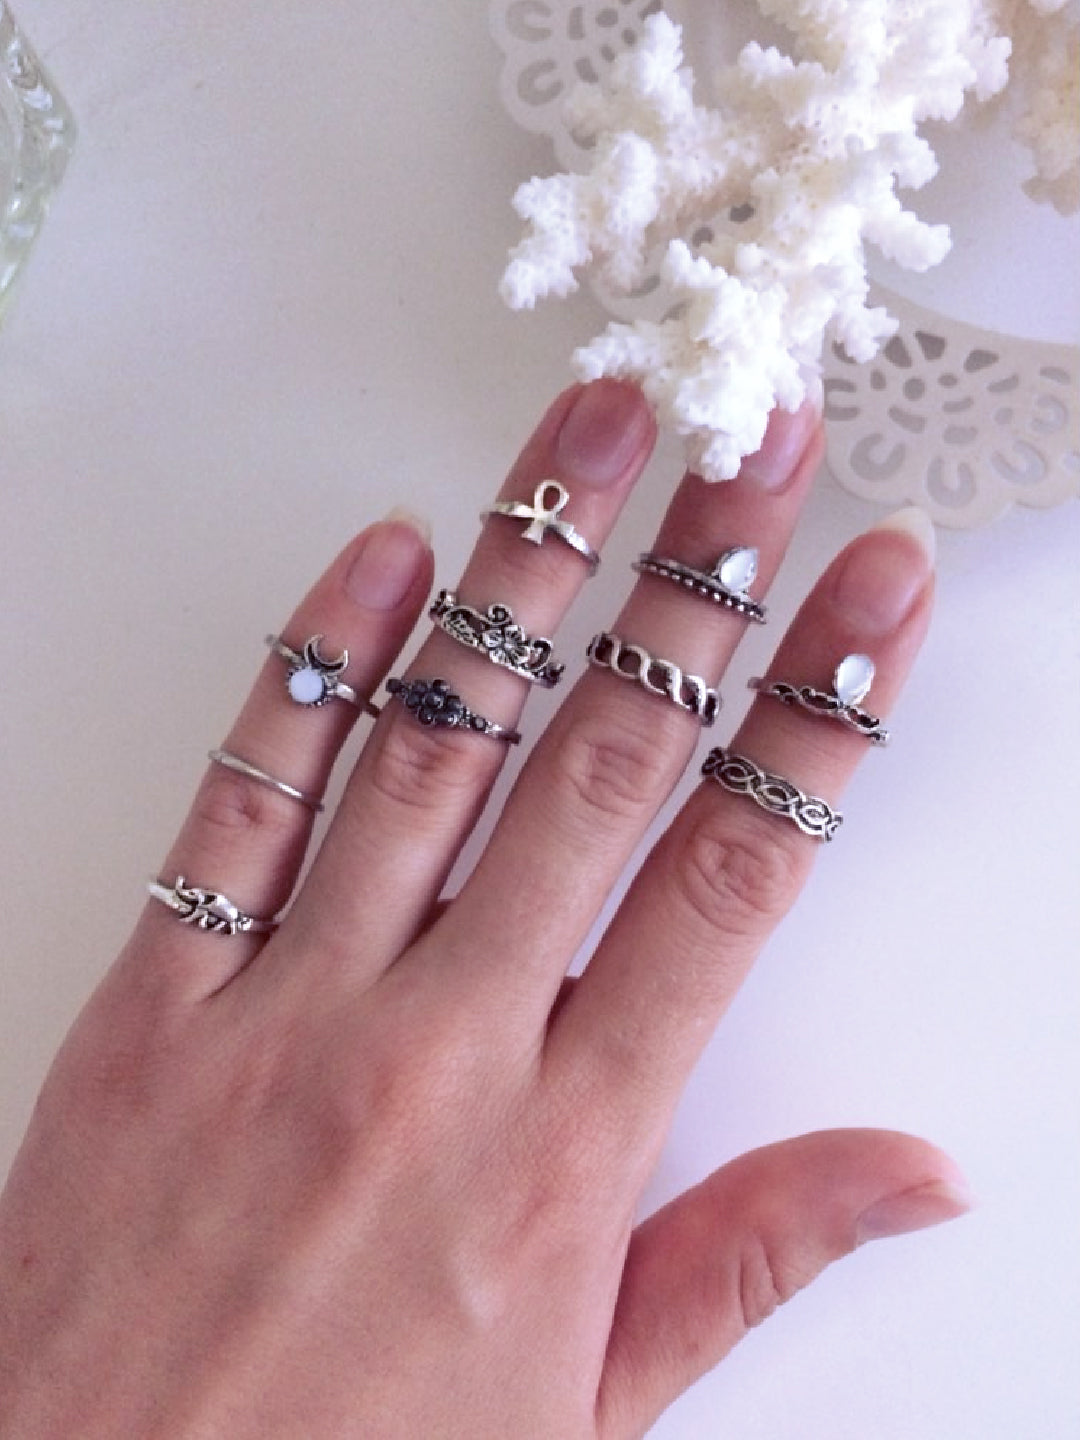 Moonchild Rings